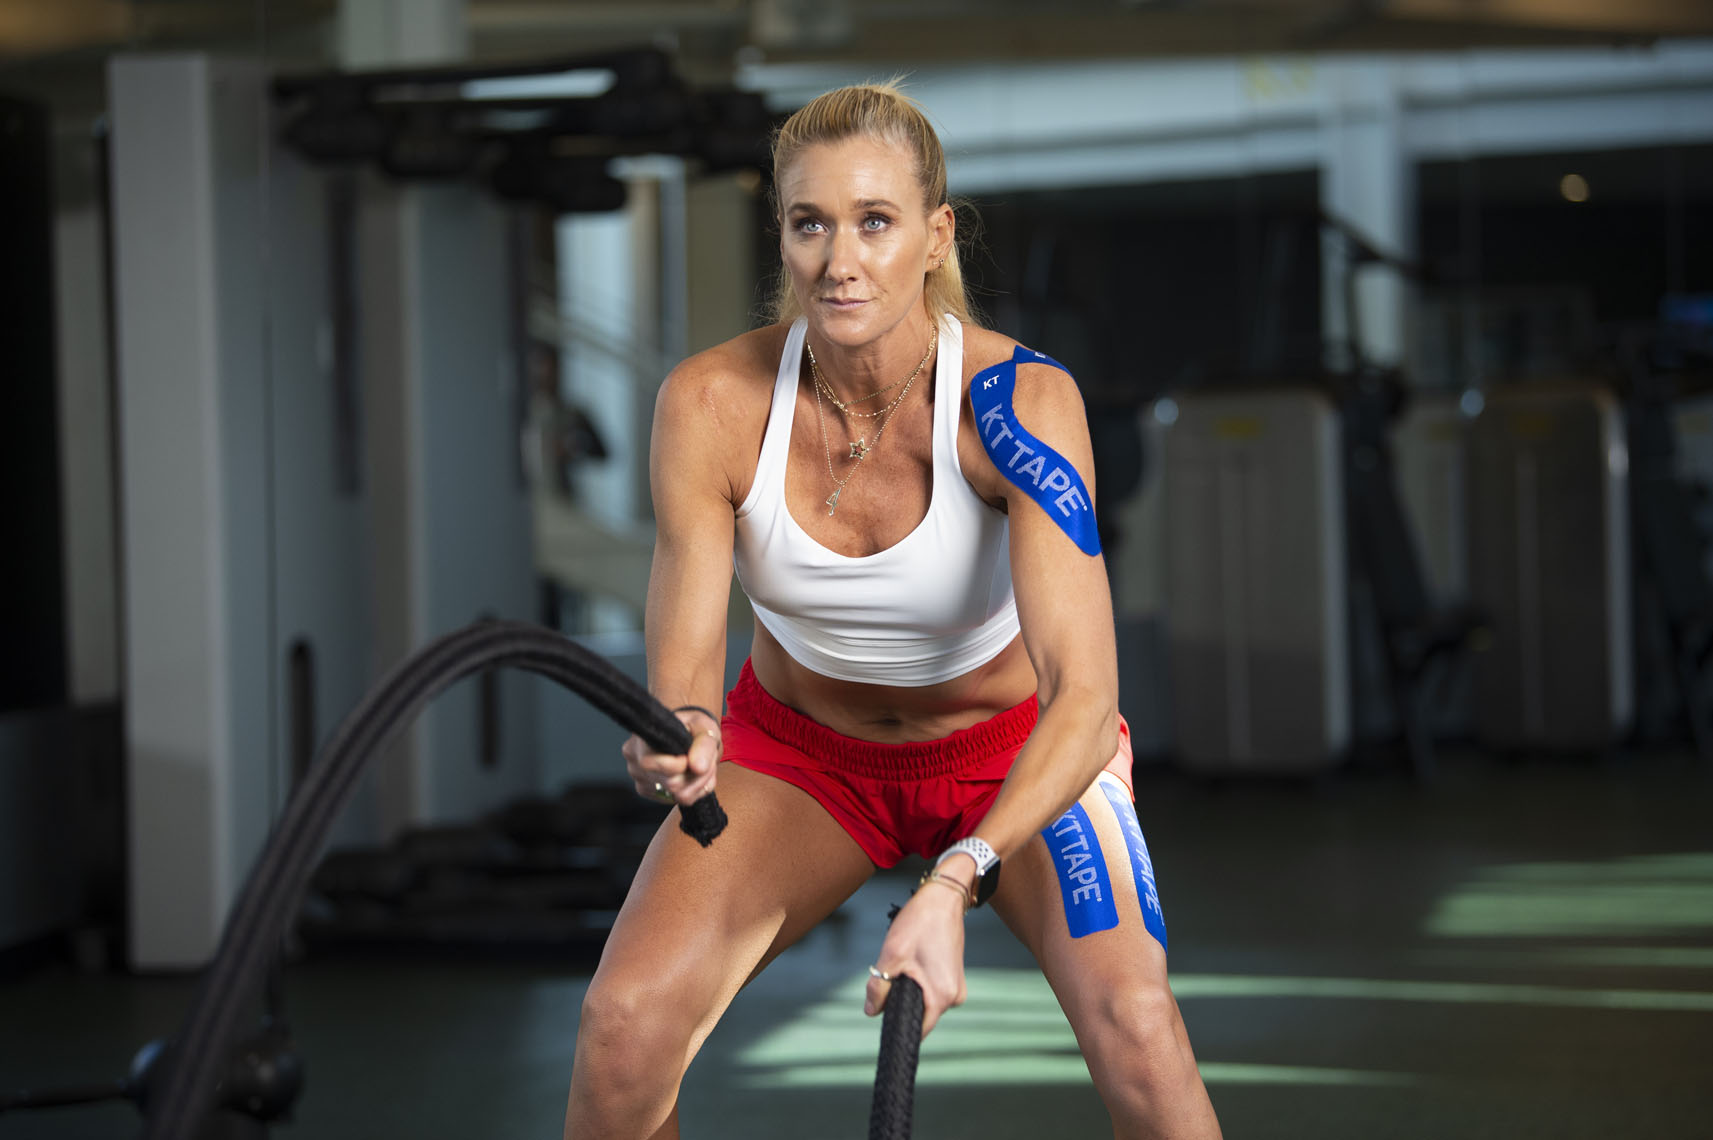 Olympian Kerri Walsh Jennings for KT Tape